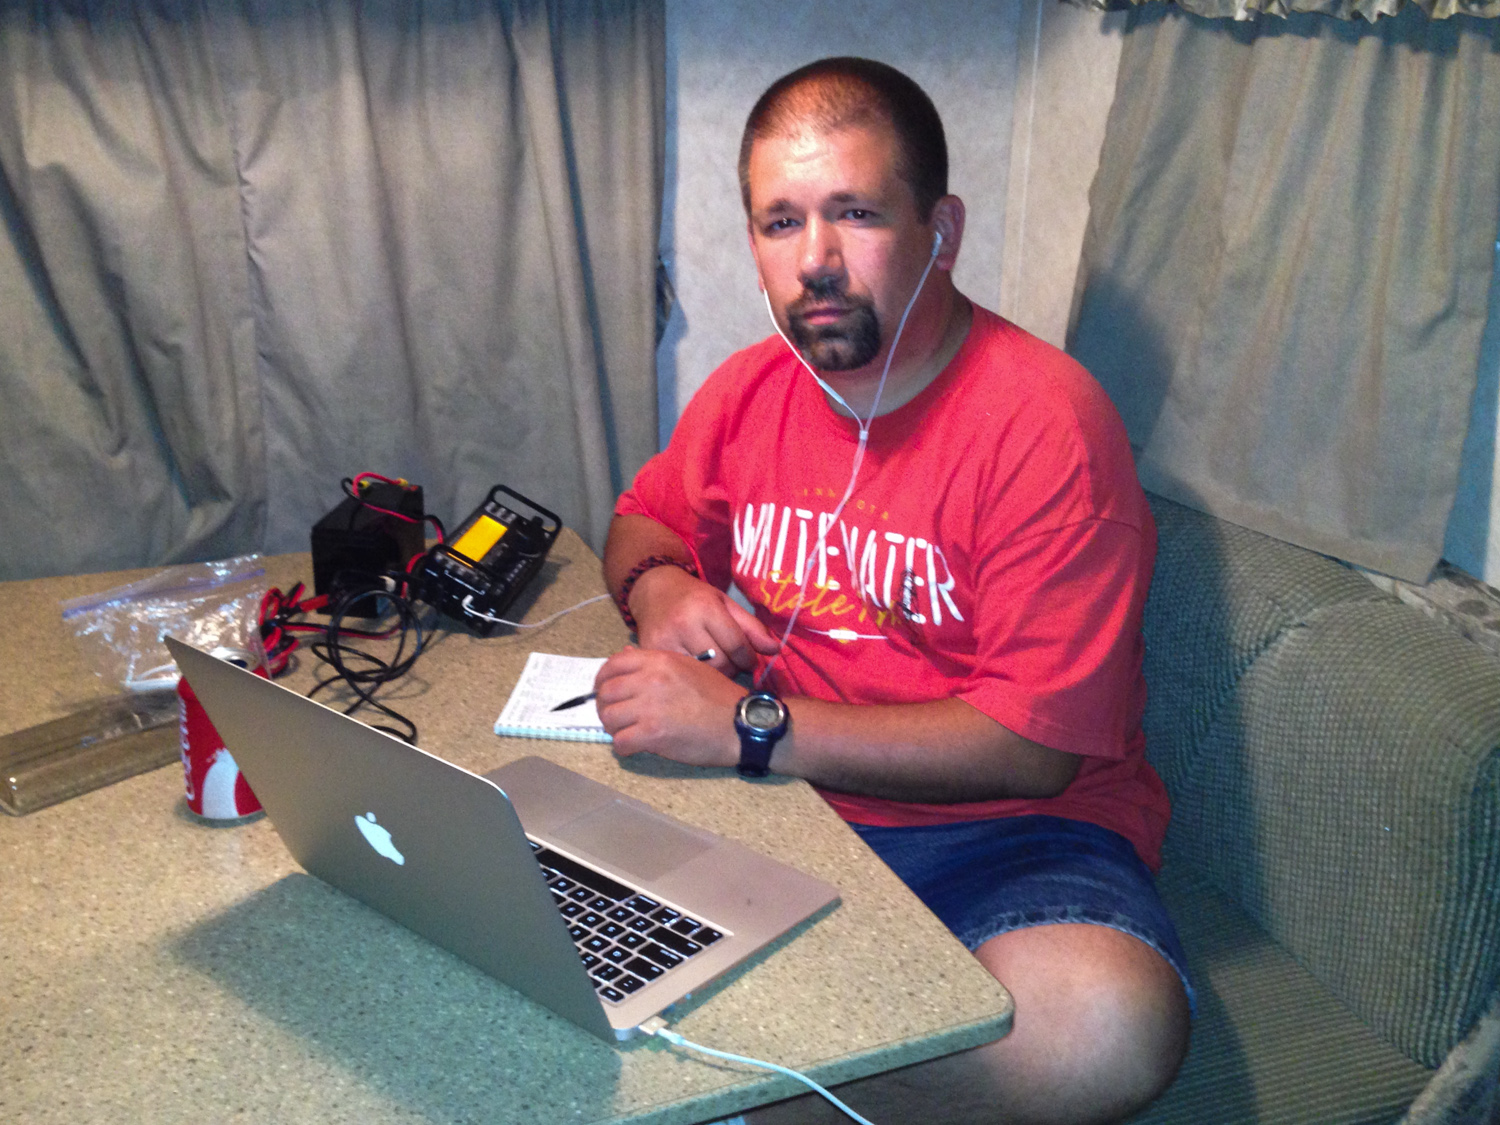 John (NG0R) operating the Elecraft KX3 from the inside of the camper on a buggy night.